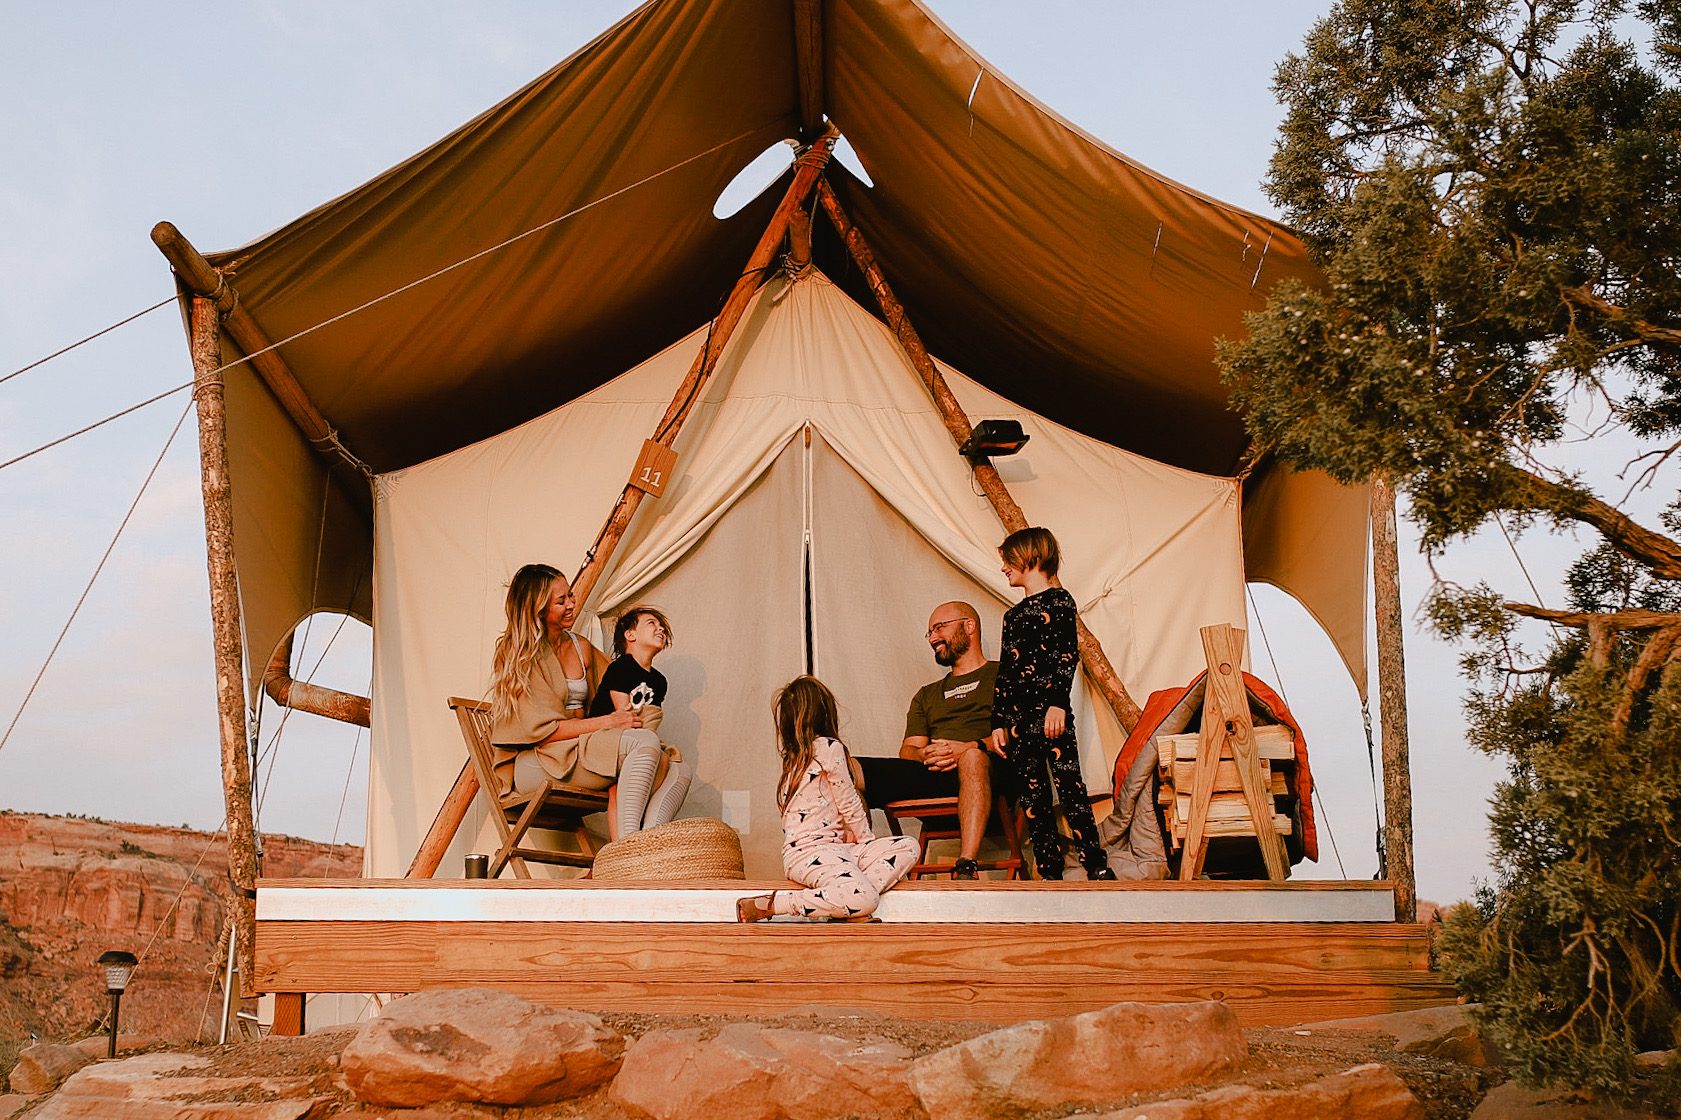 glamping in moab, utah with the whole family. #theldltravels #thelovedesignedlife